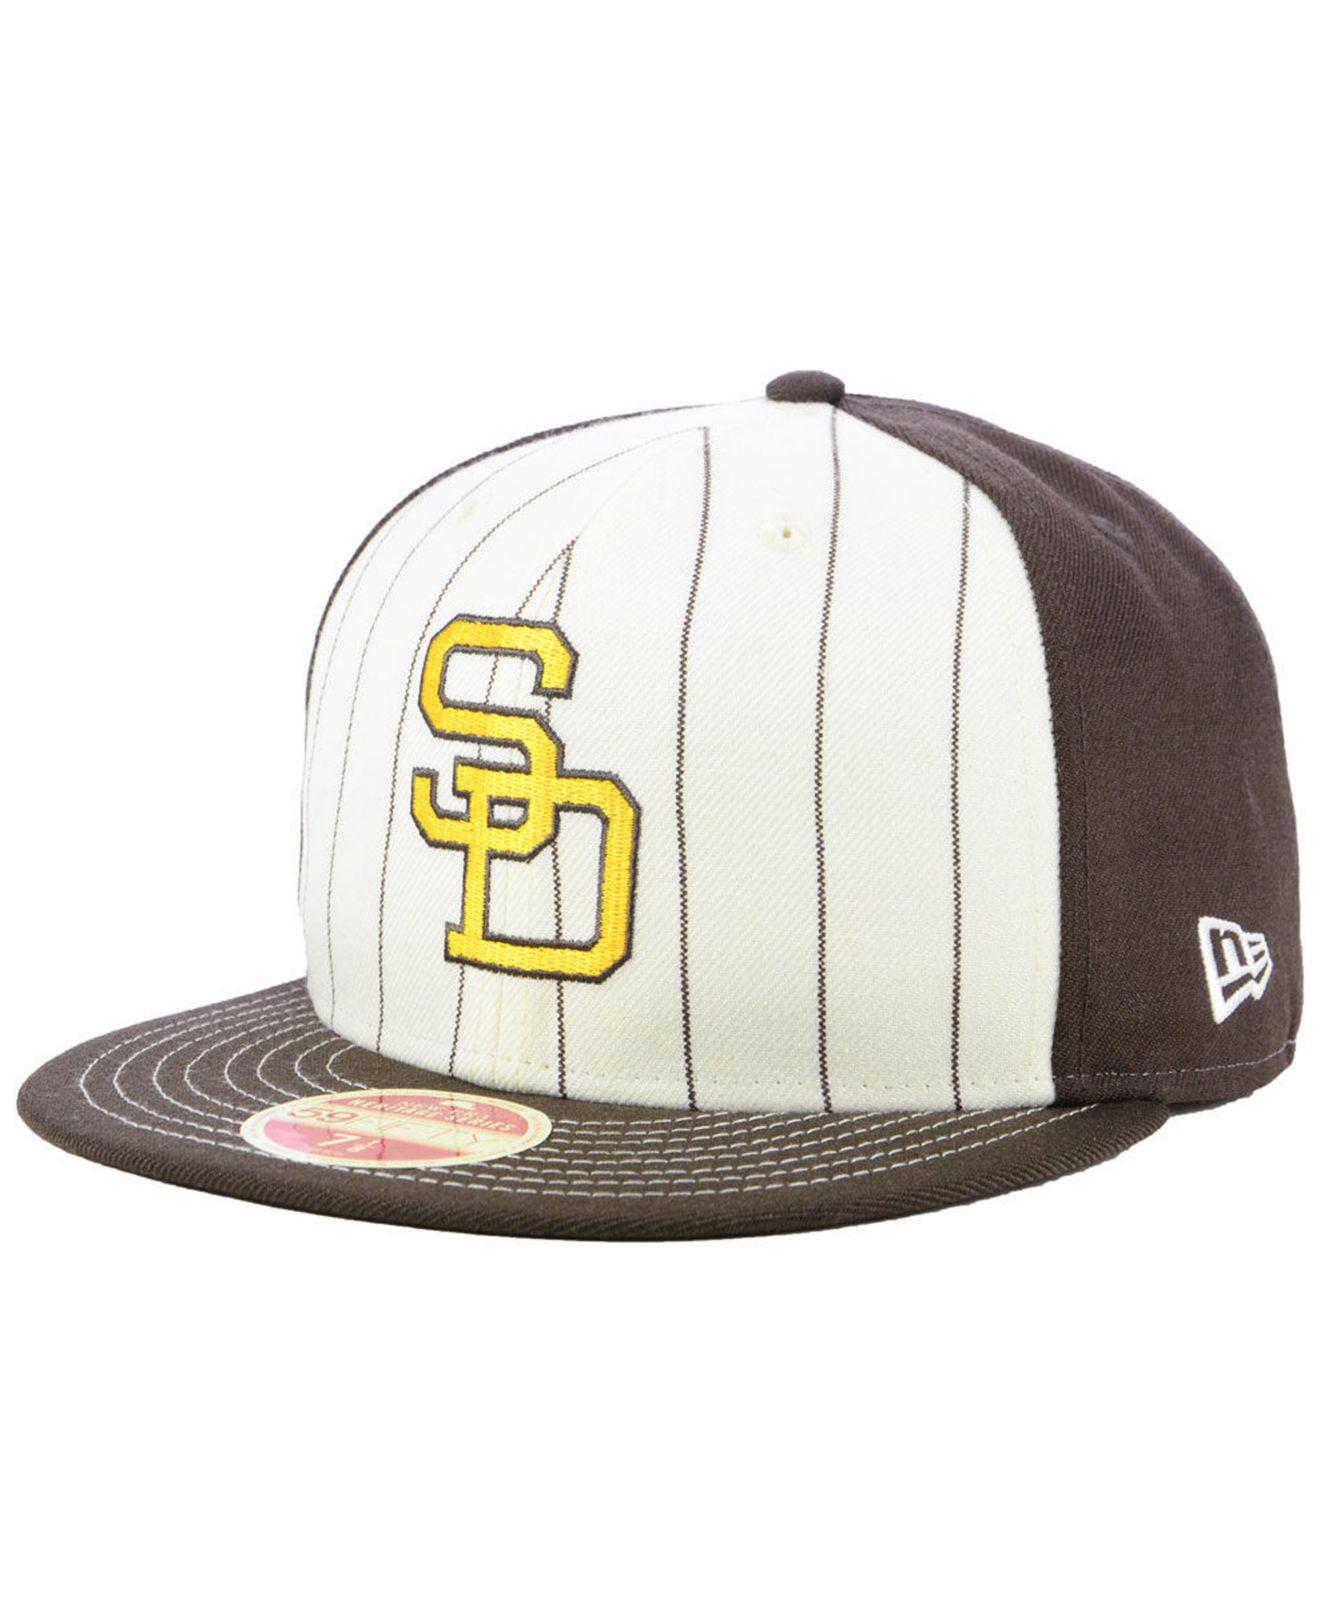 hot sale online 69bee 2a773 KTZ. Men s San Diego Padres Vintage Front 59fifty Fitted Cap